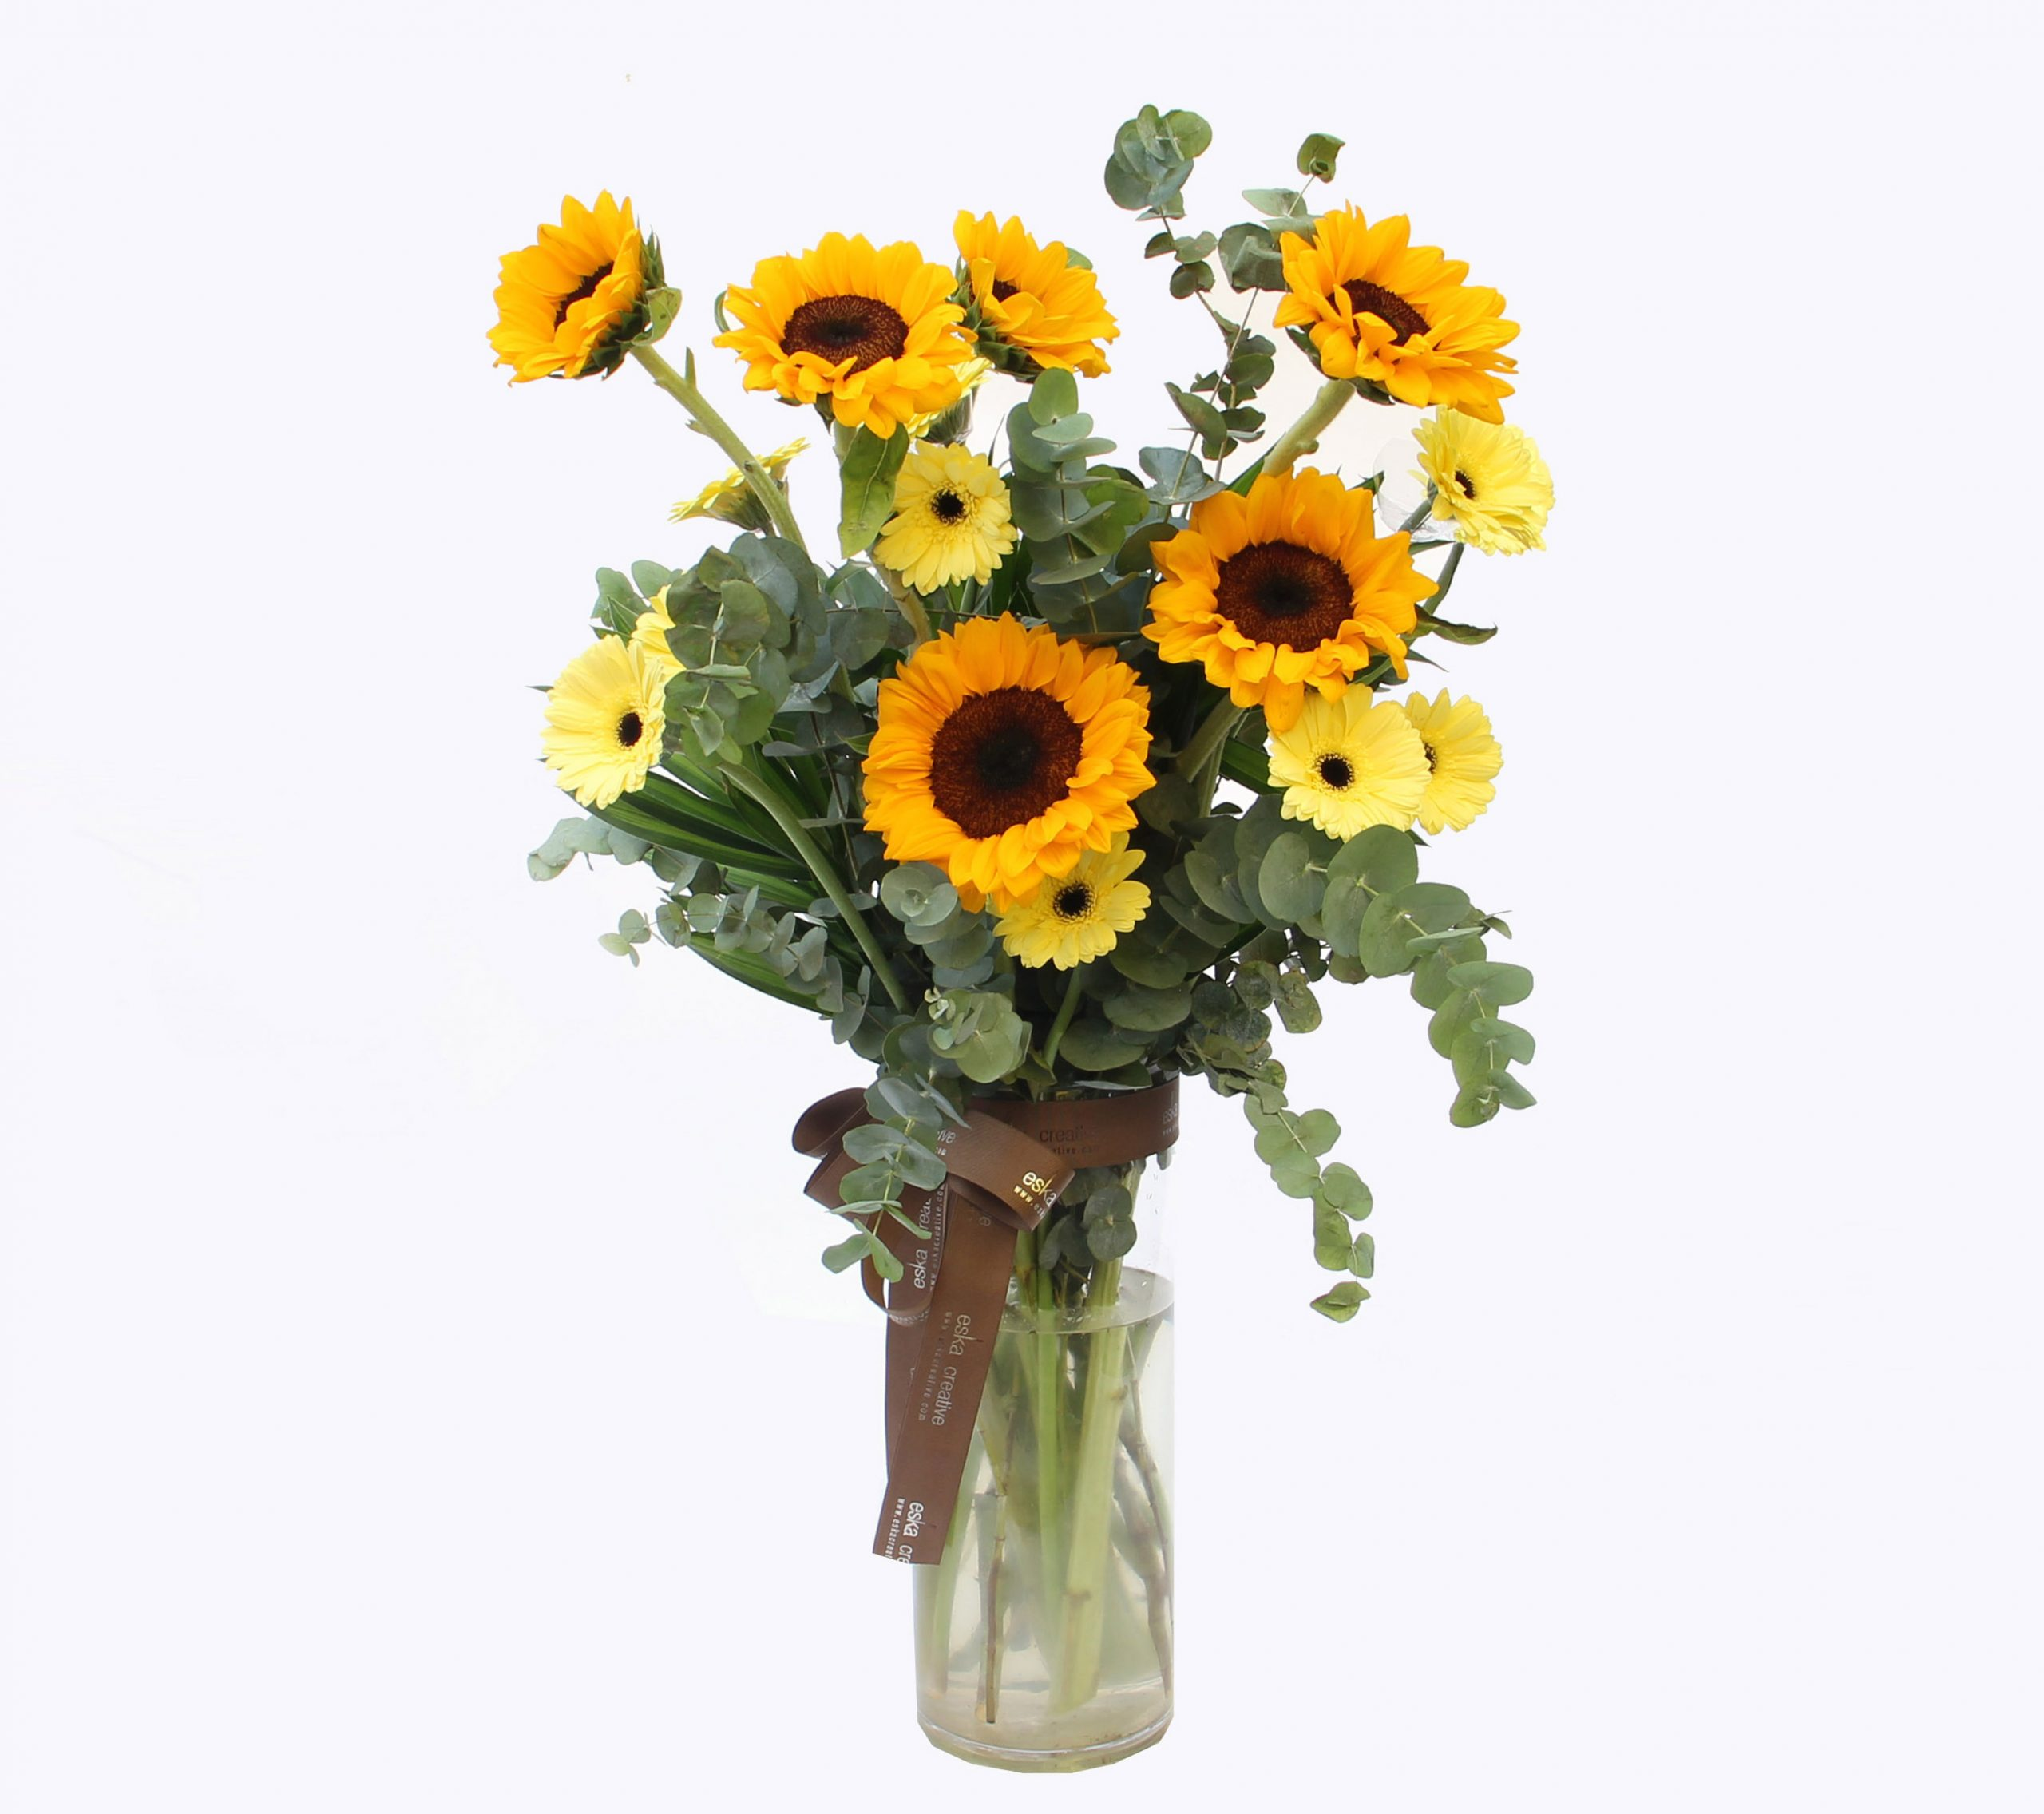 Sunflower and Daisies | Flowers In Vase | Eska Creative Gifting